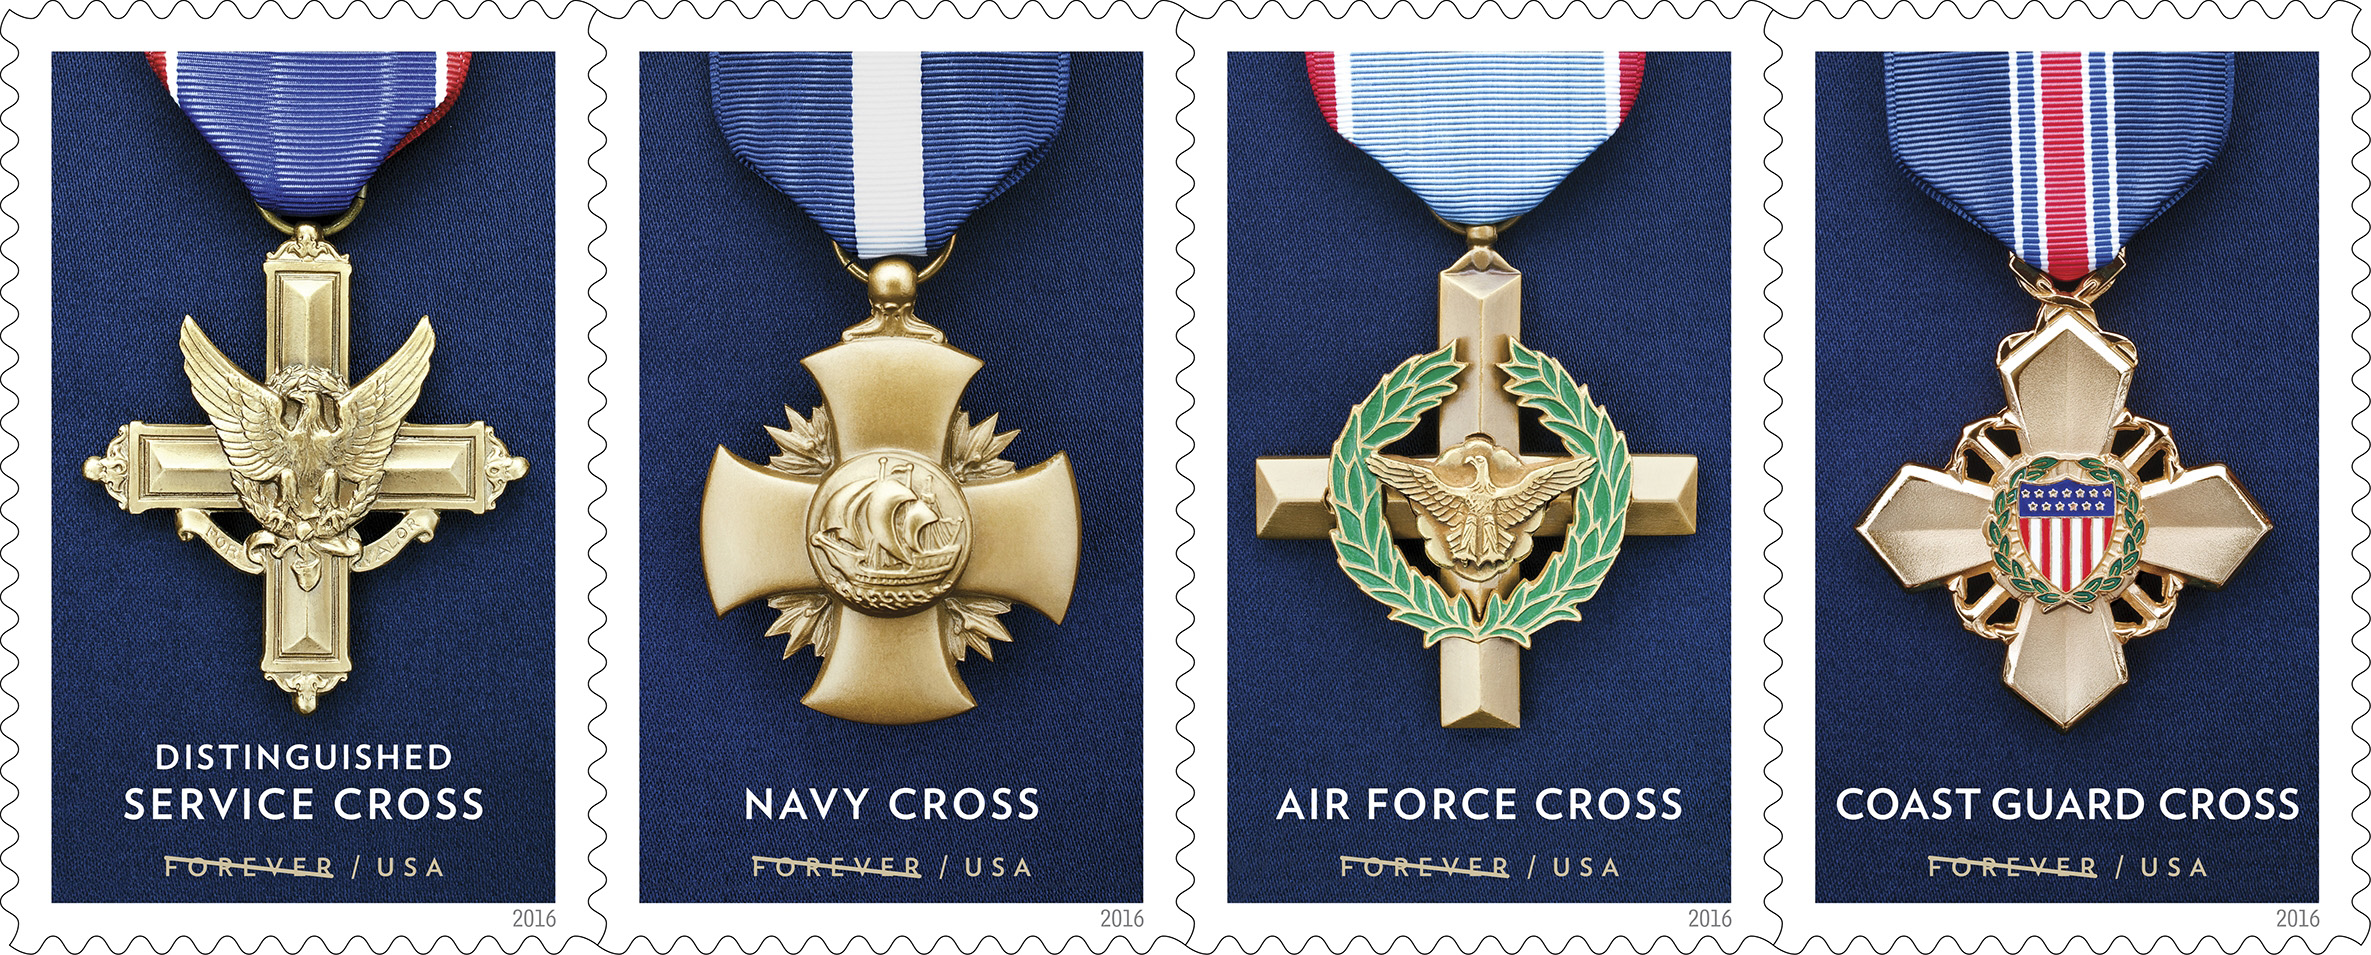 Post Office issues new stamps honoring military Service Cross Medals